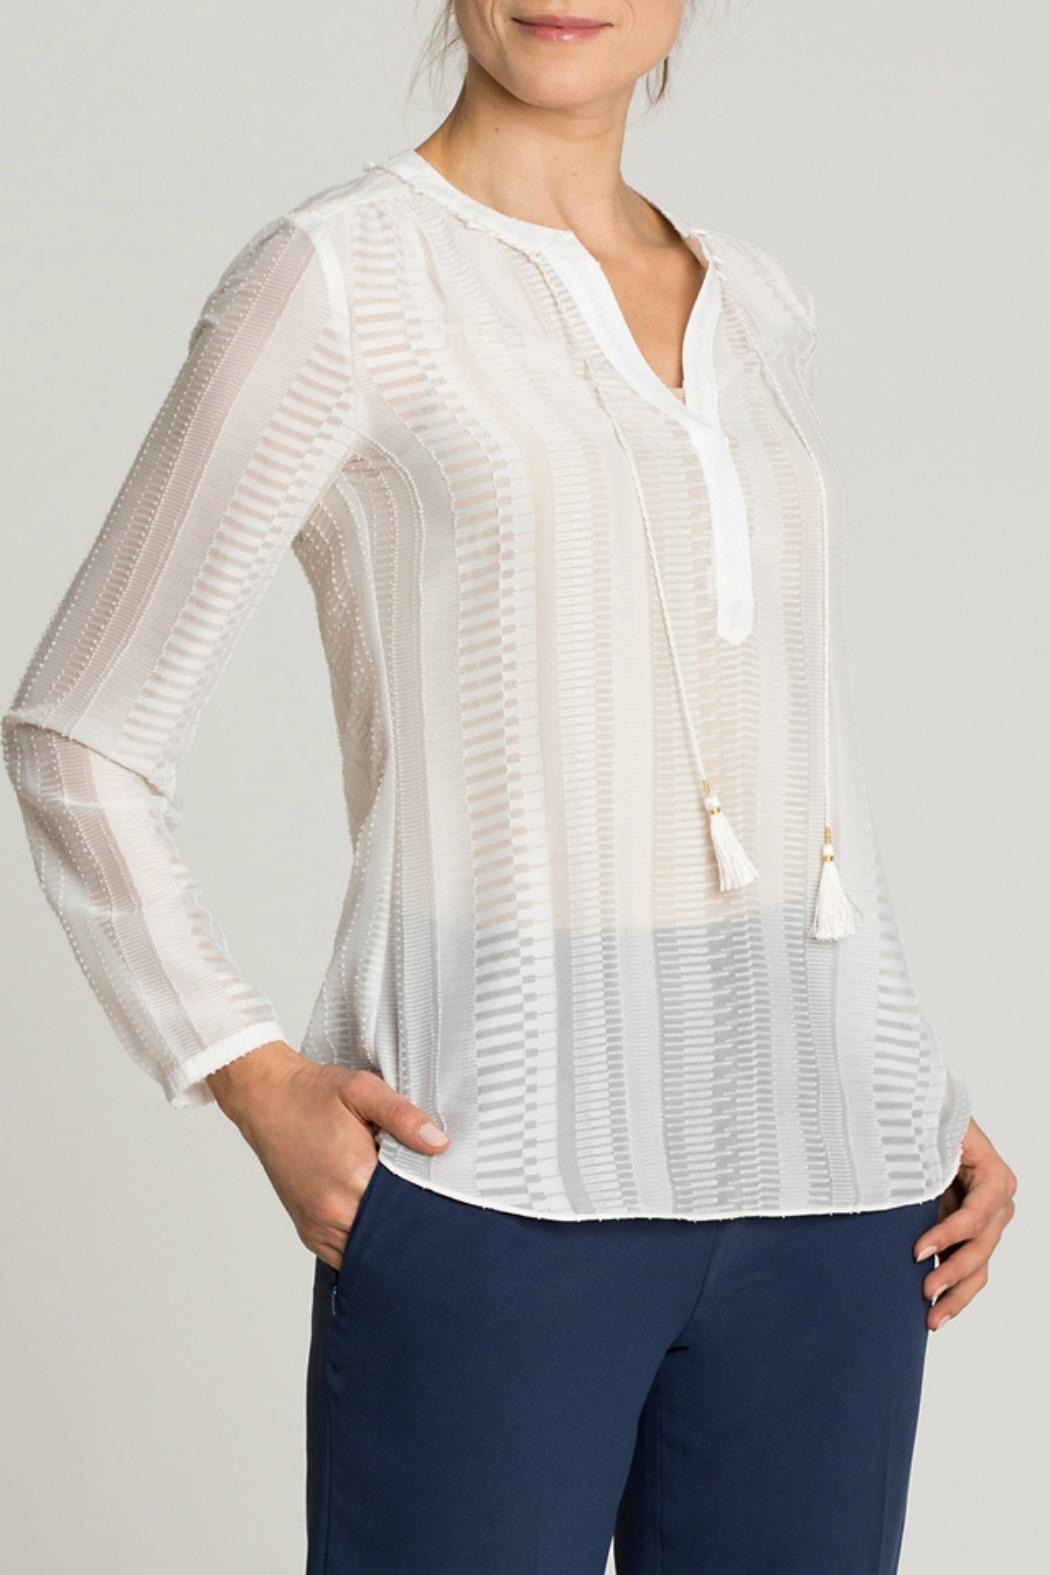 Nic + Zoe Modern Romance Top - Front Cropped Image